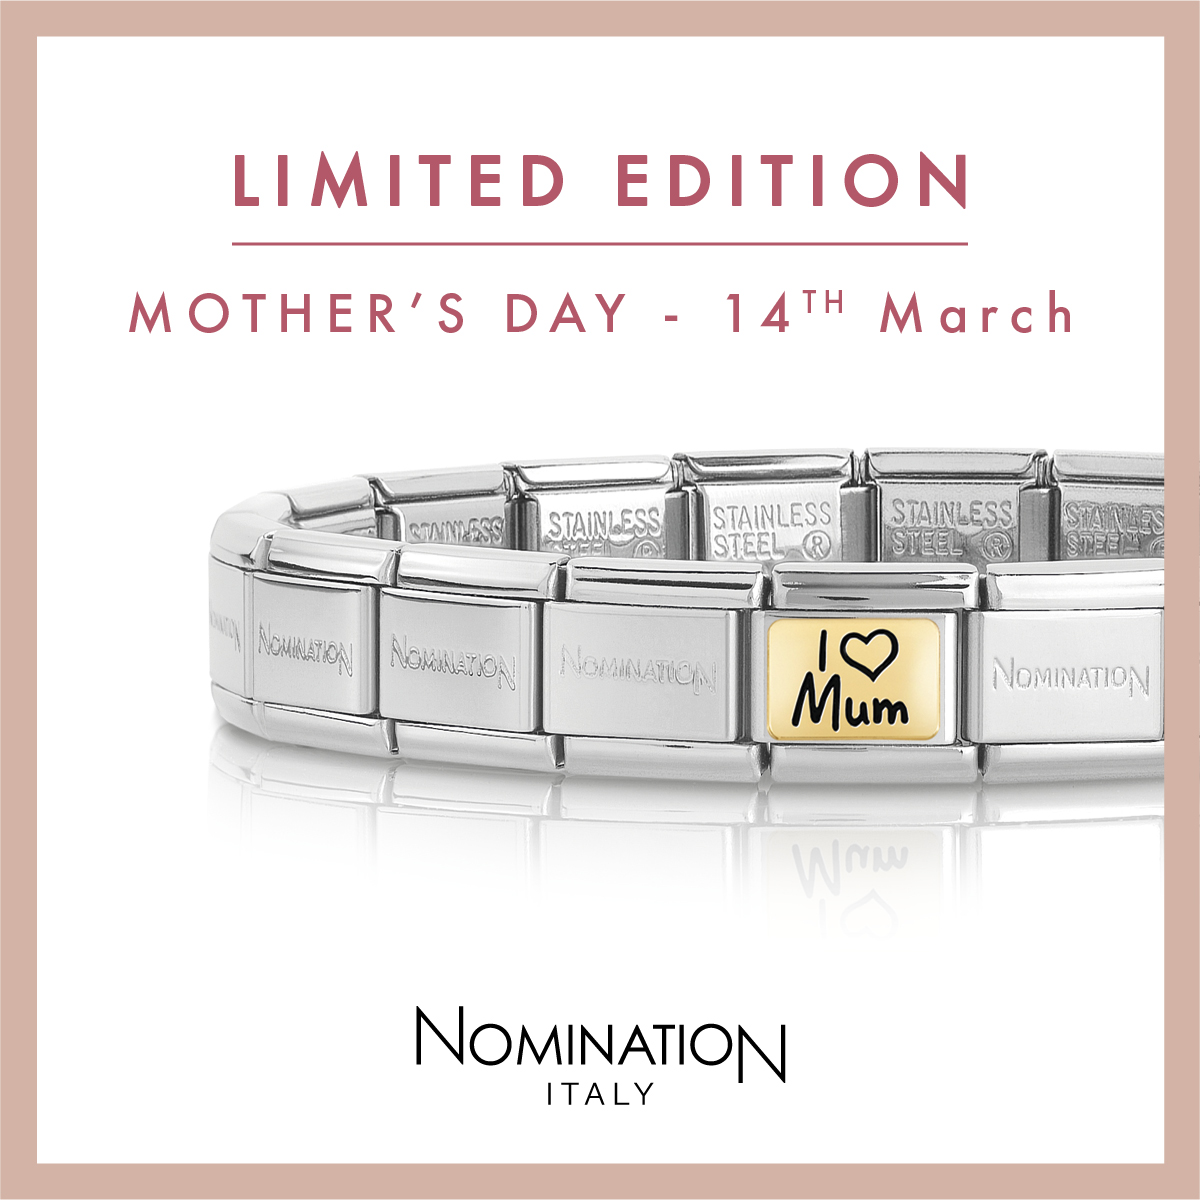 Limited Edition Nomination Charms for Mother's Day ❤  Treat your Mum this Mother's Day to a limited edition Nomination charm, perfect to start her Nomination journey ✨  Shop Nomination 👉  #Wednesdaywisdom #Wednesdaymotivation